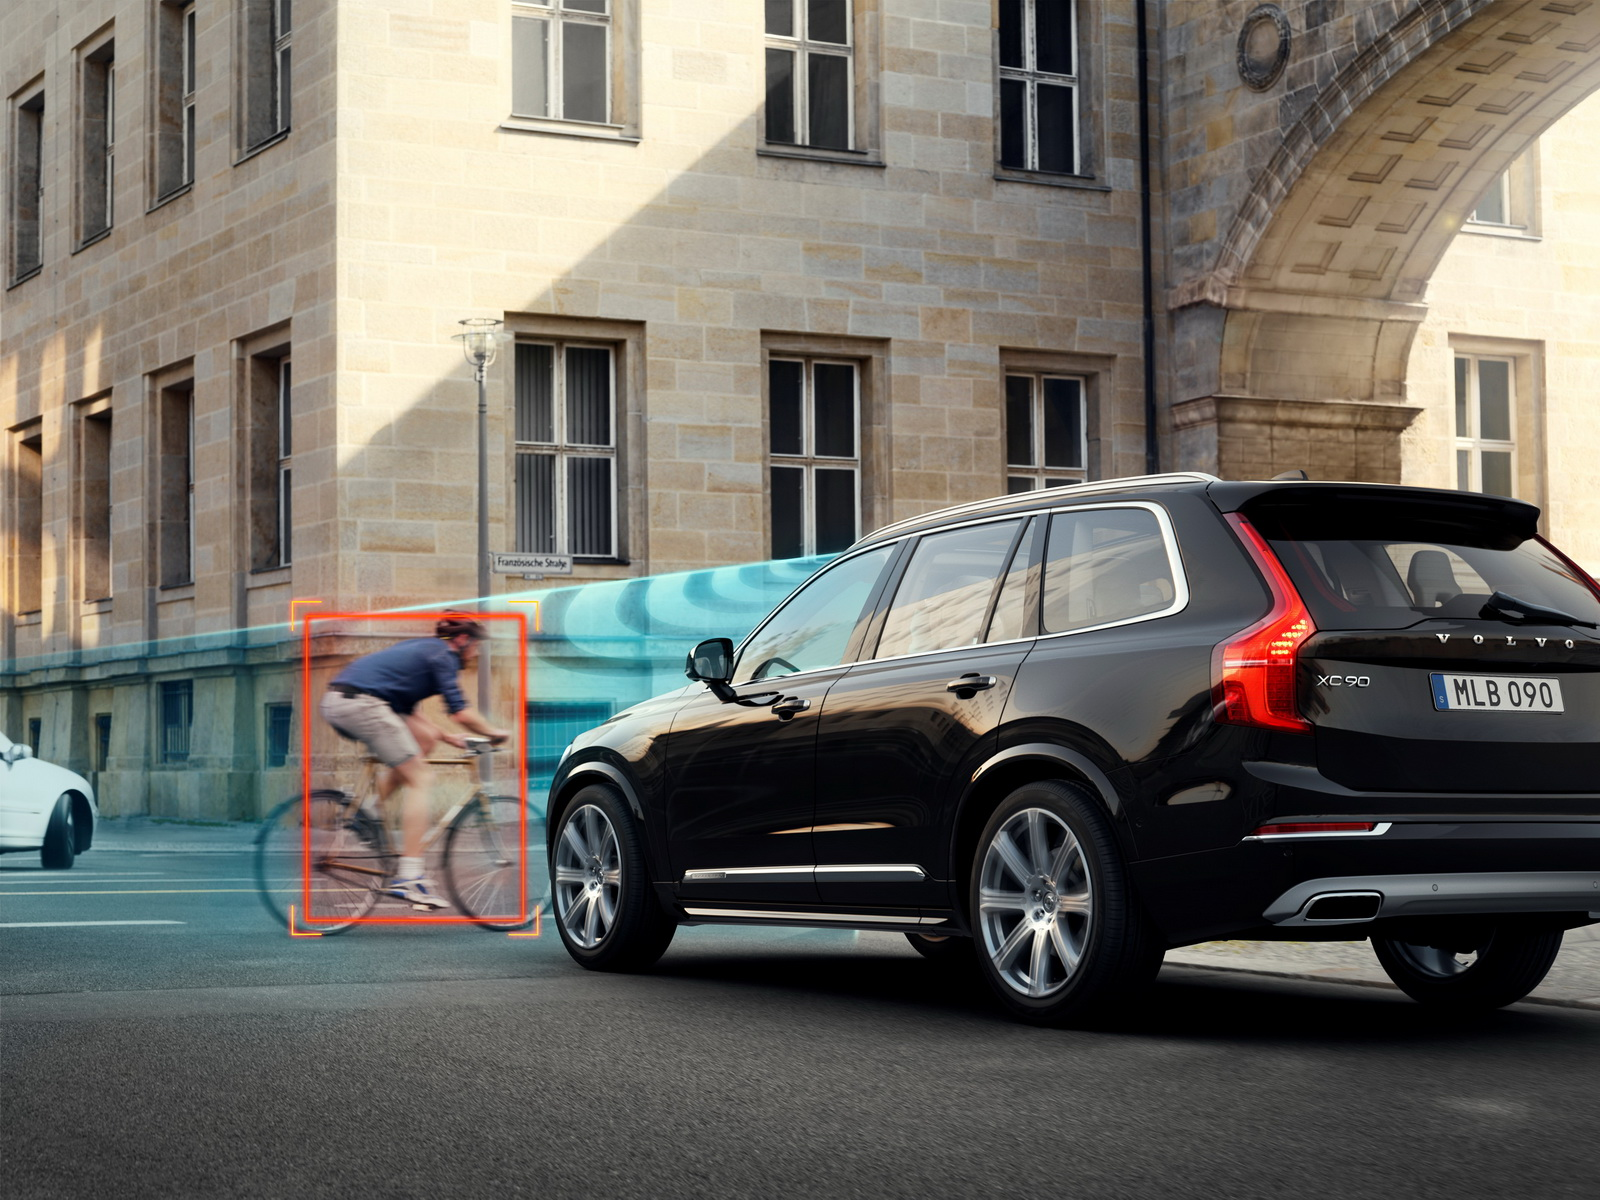 The City Safety system in the all-new Volvo XC90 features Cyclist detection with full auto brake, day and night.